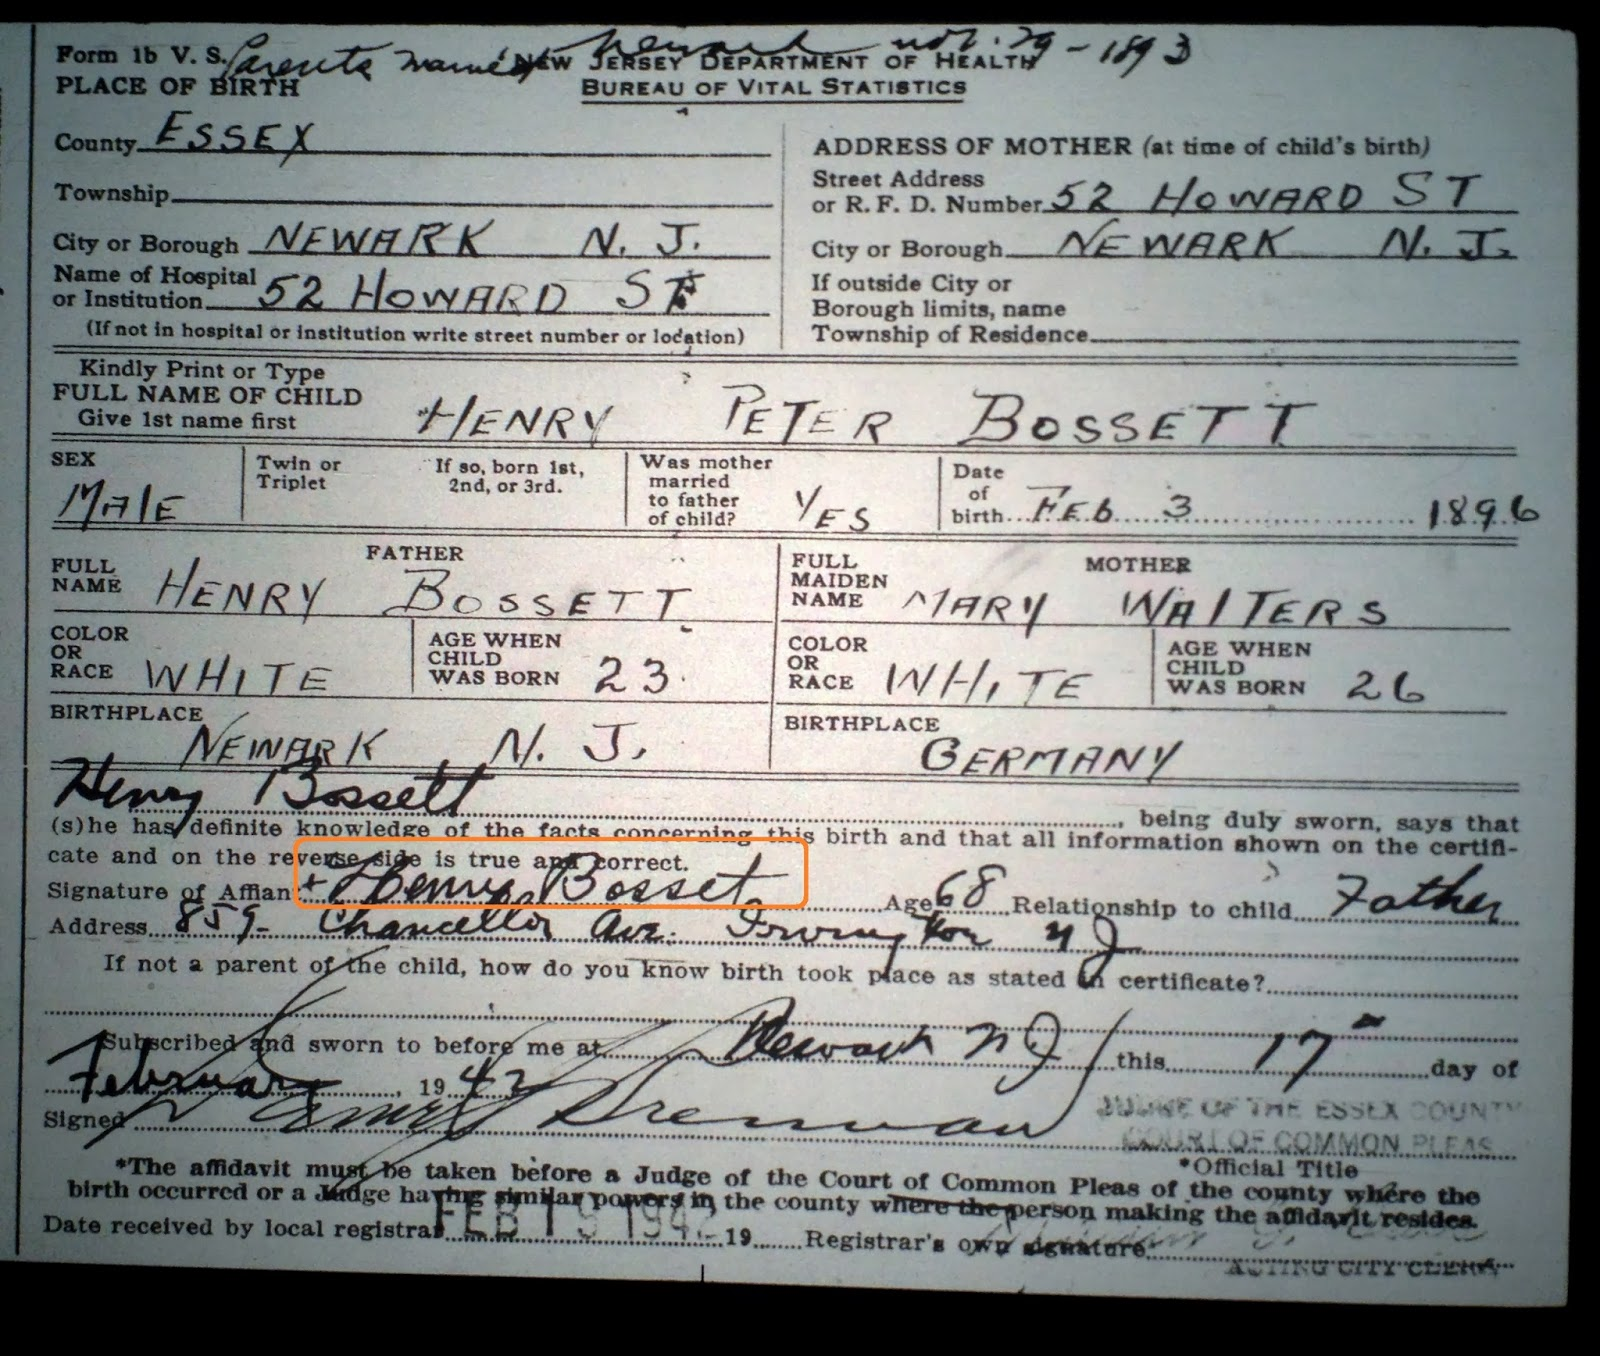 Family history research by jody delayed birth certificates delayed birth certificate for henry bossett born in newark new jersey on february 3 1896 xflitez Choice Image